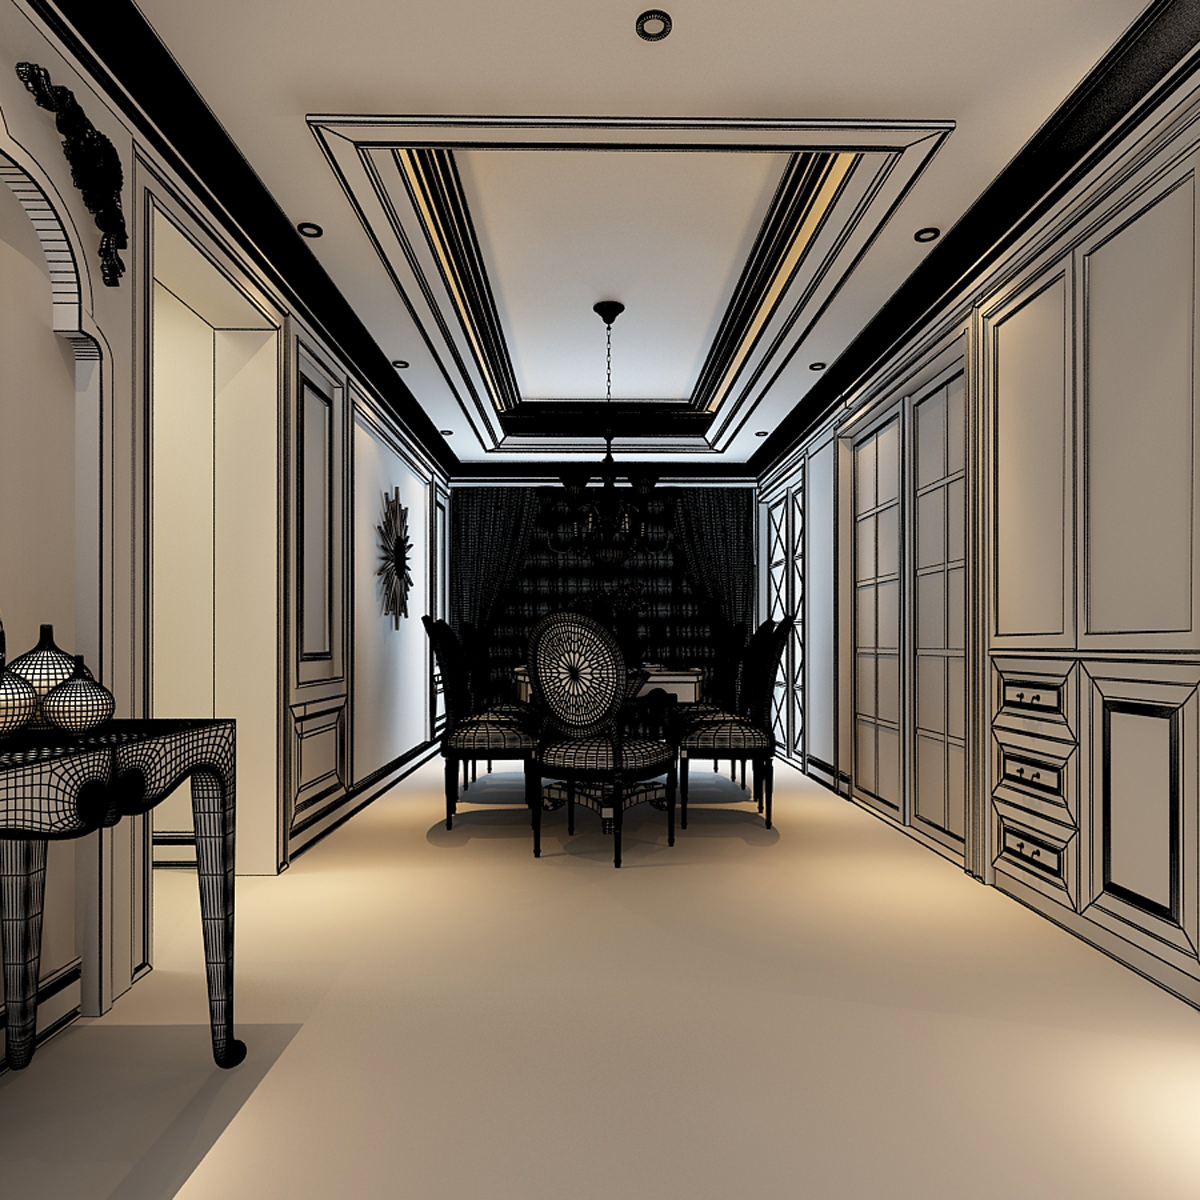 Luxurious american style house interior photoreal 3d model for American style house interior